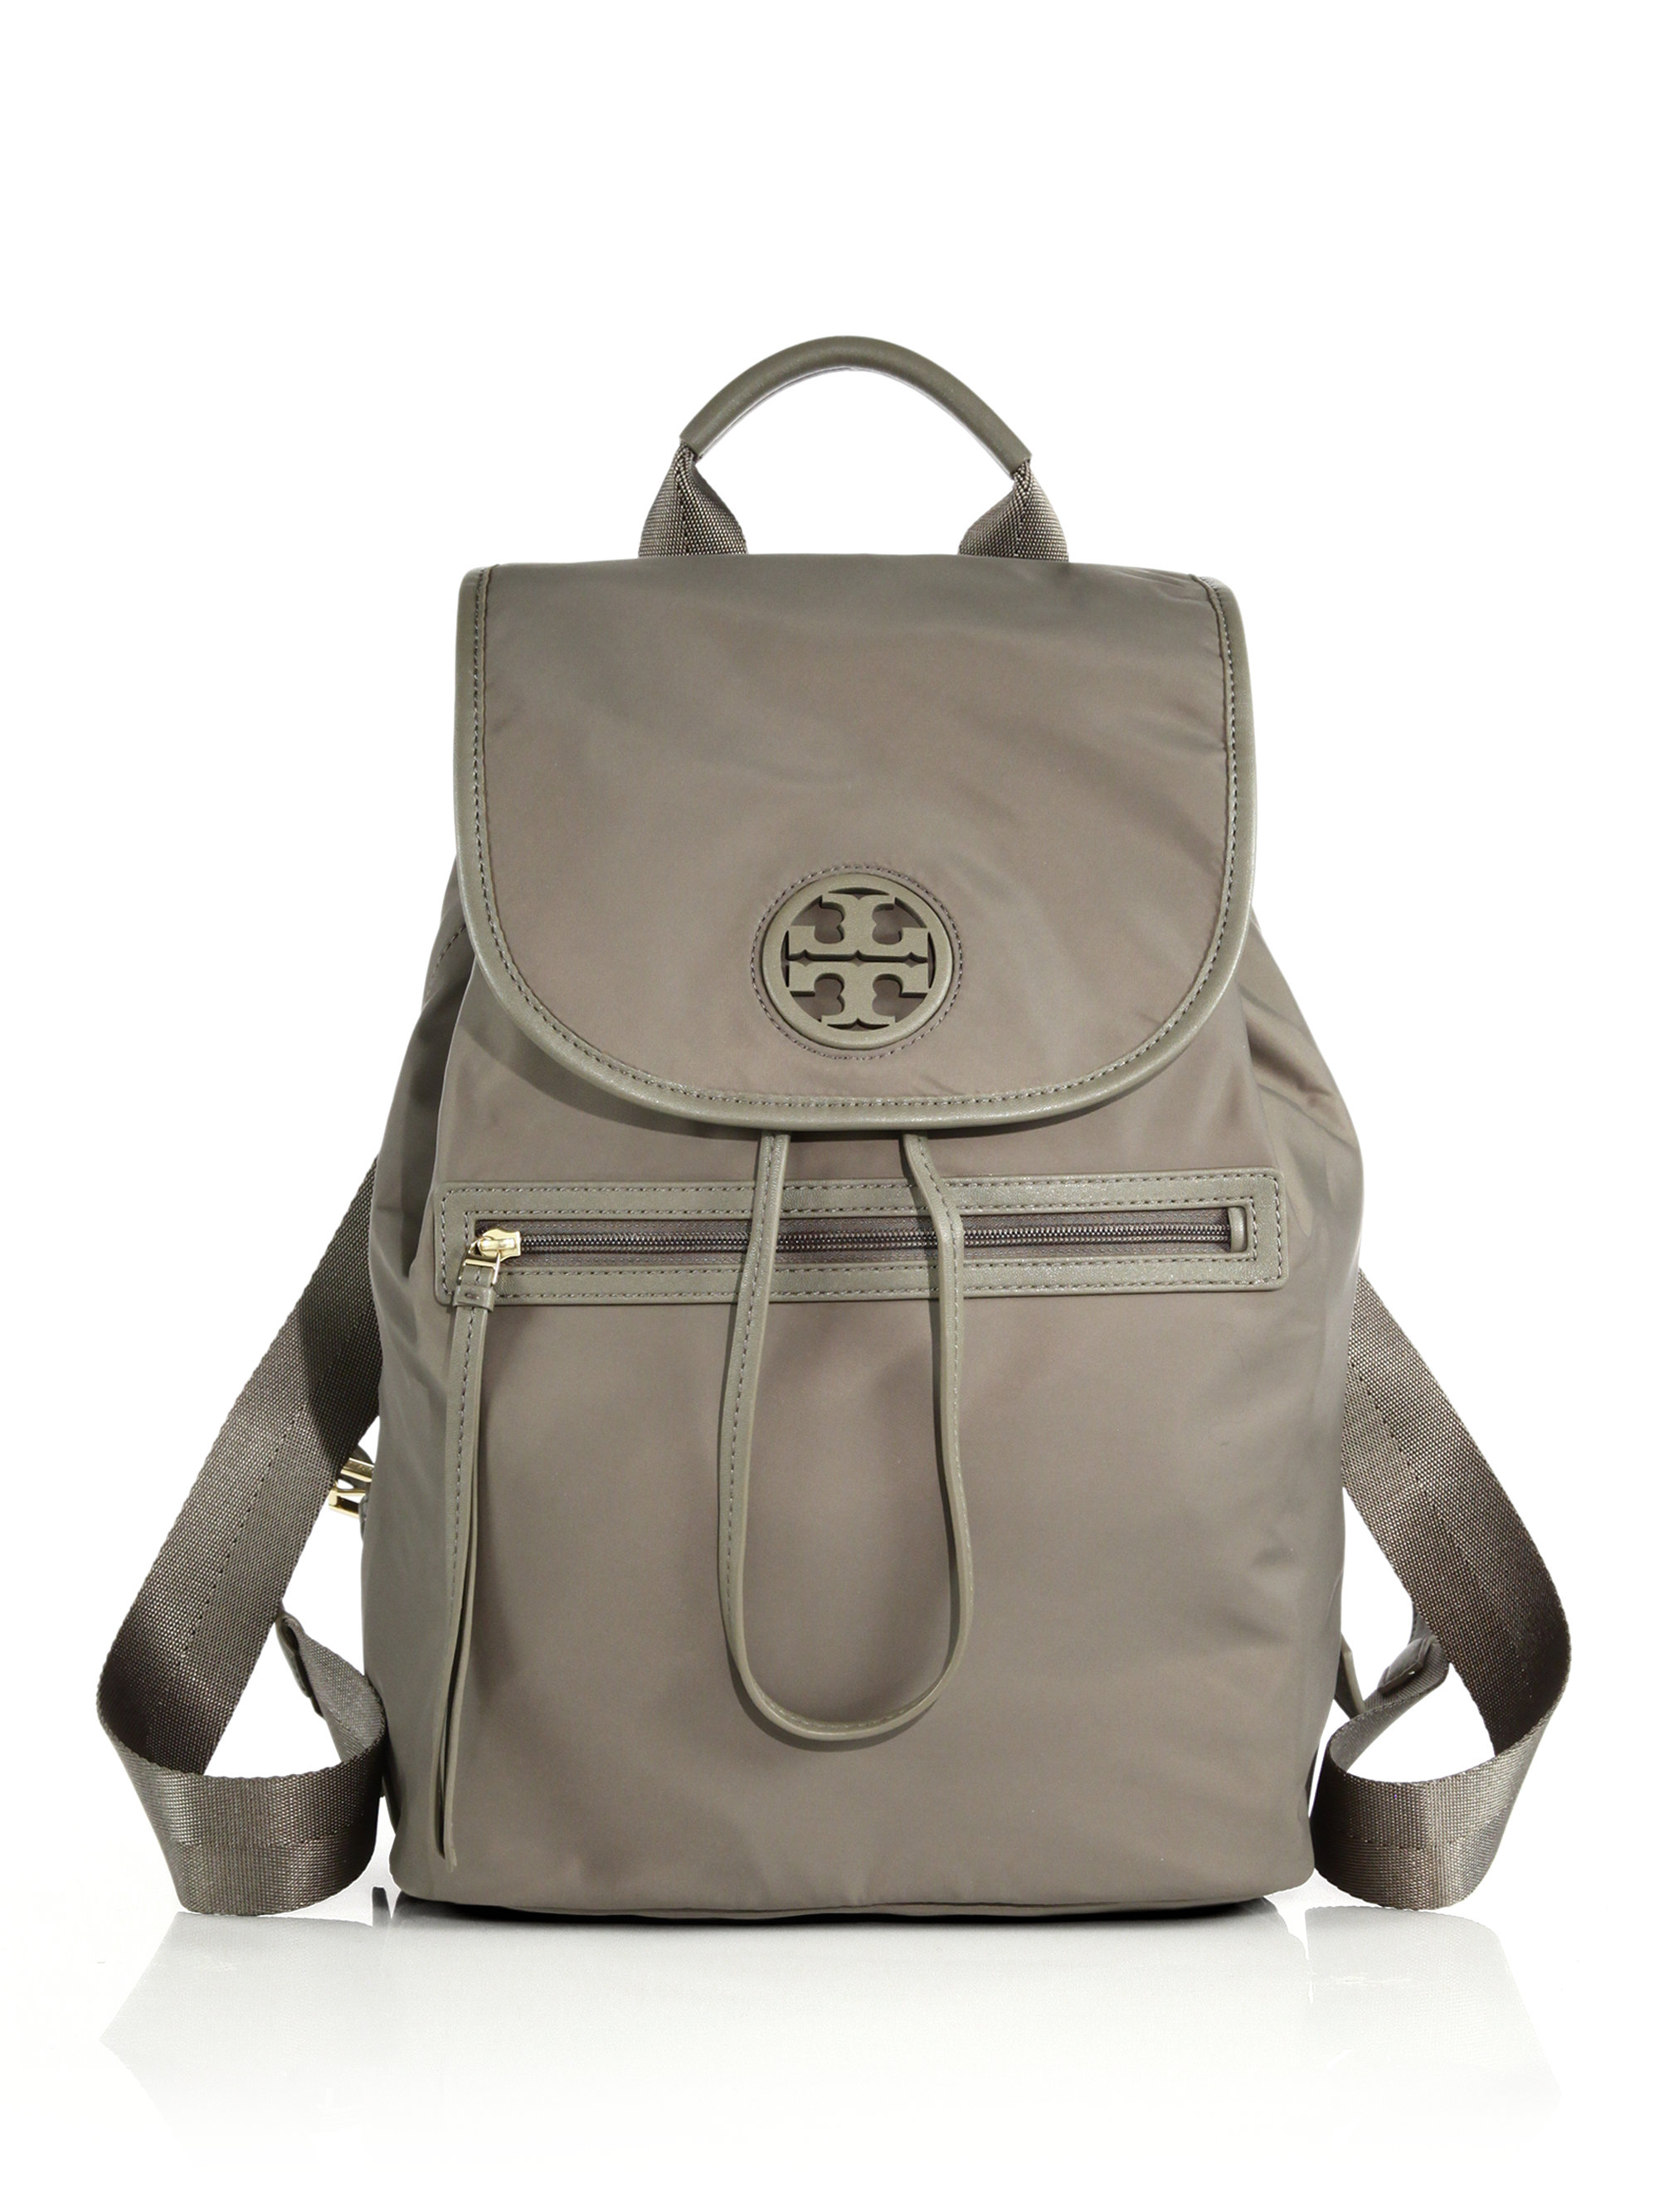 Tory Burch Nylon Flap Backpack In Gray taupe Lyst